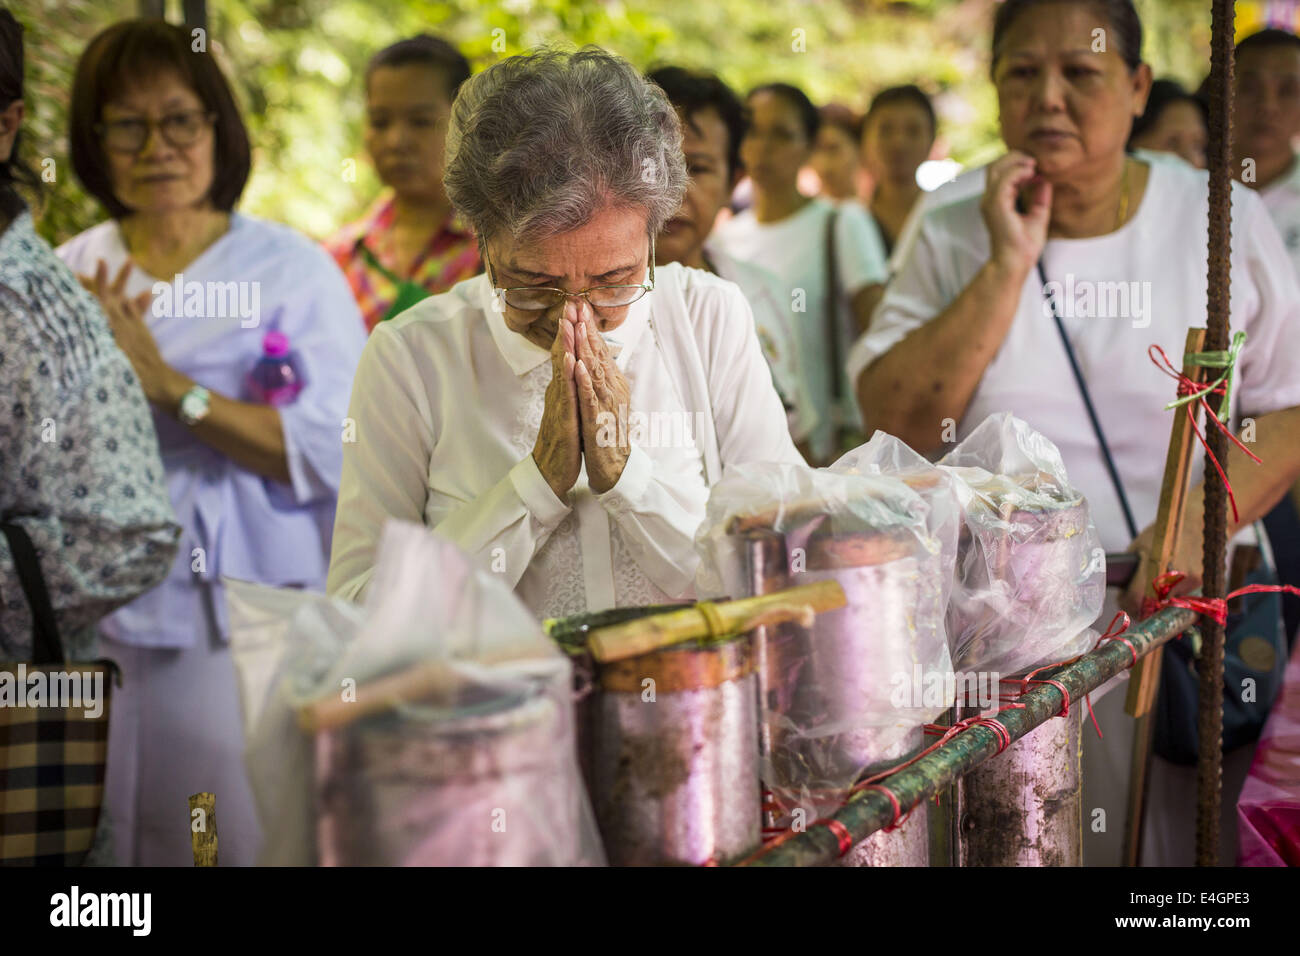 Bangkok, Bangkok, Thailand. 11th July, 2014. A woman prays after pouring molten wax into a candle mold at Wat Pathum - Stock Image